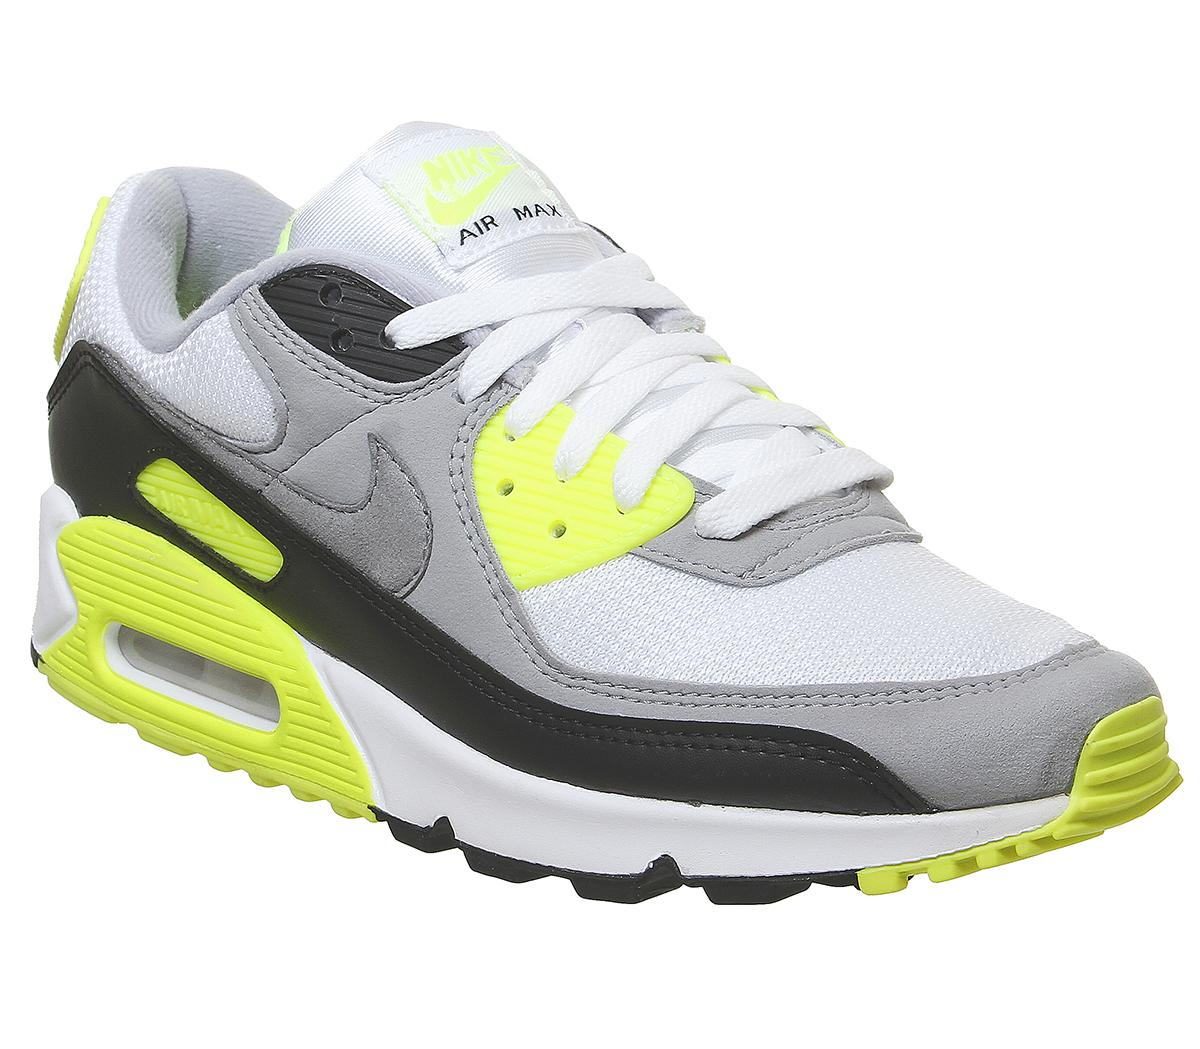 Aparentemente Ortodoxo Especialmente  Nike Air Max 90 Trainers White Particle Grey Black Volt - Unisex Sports